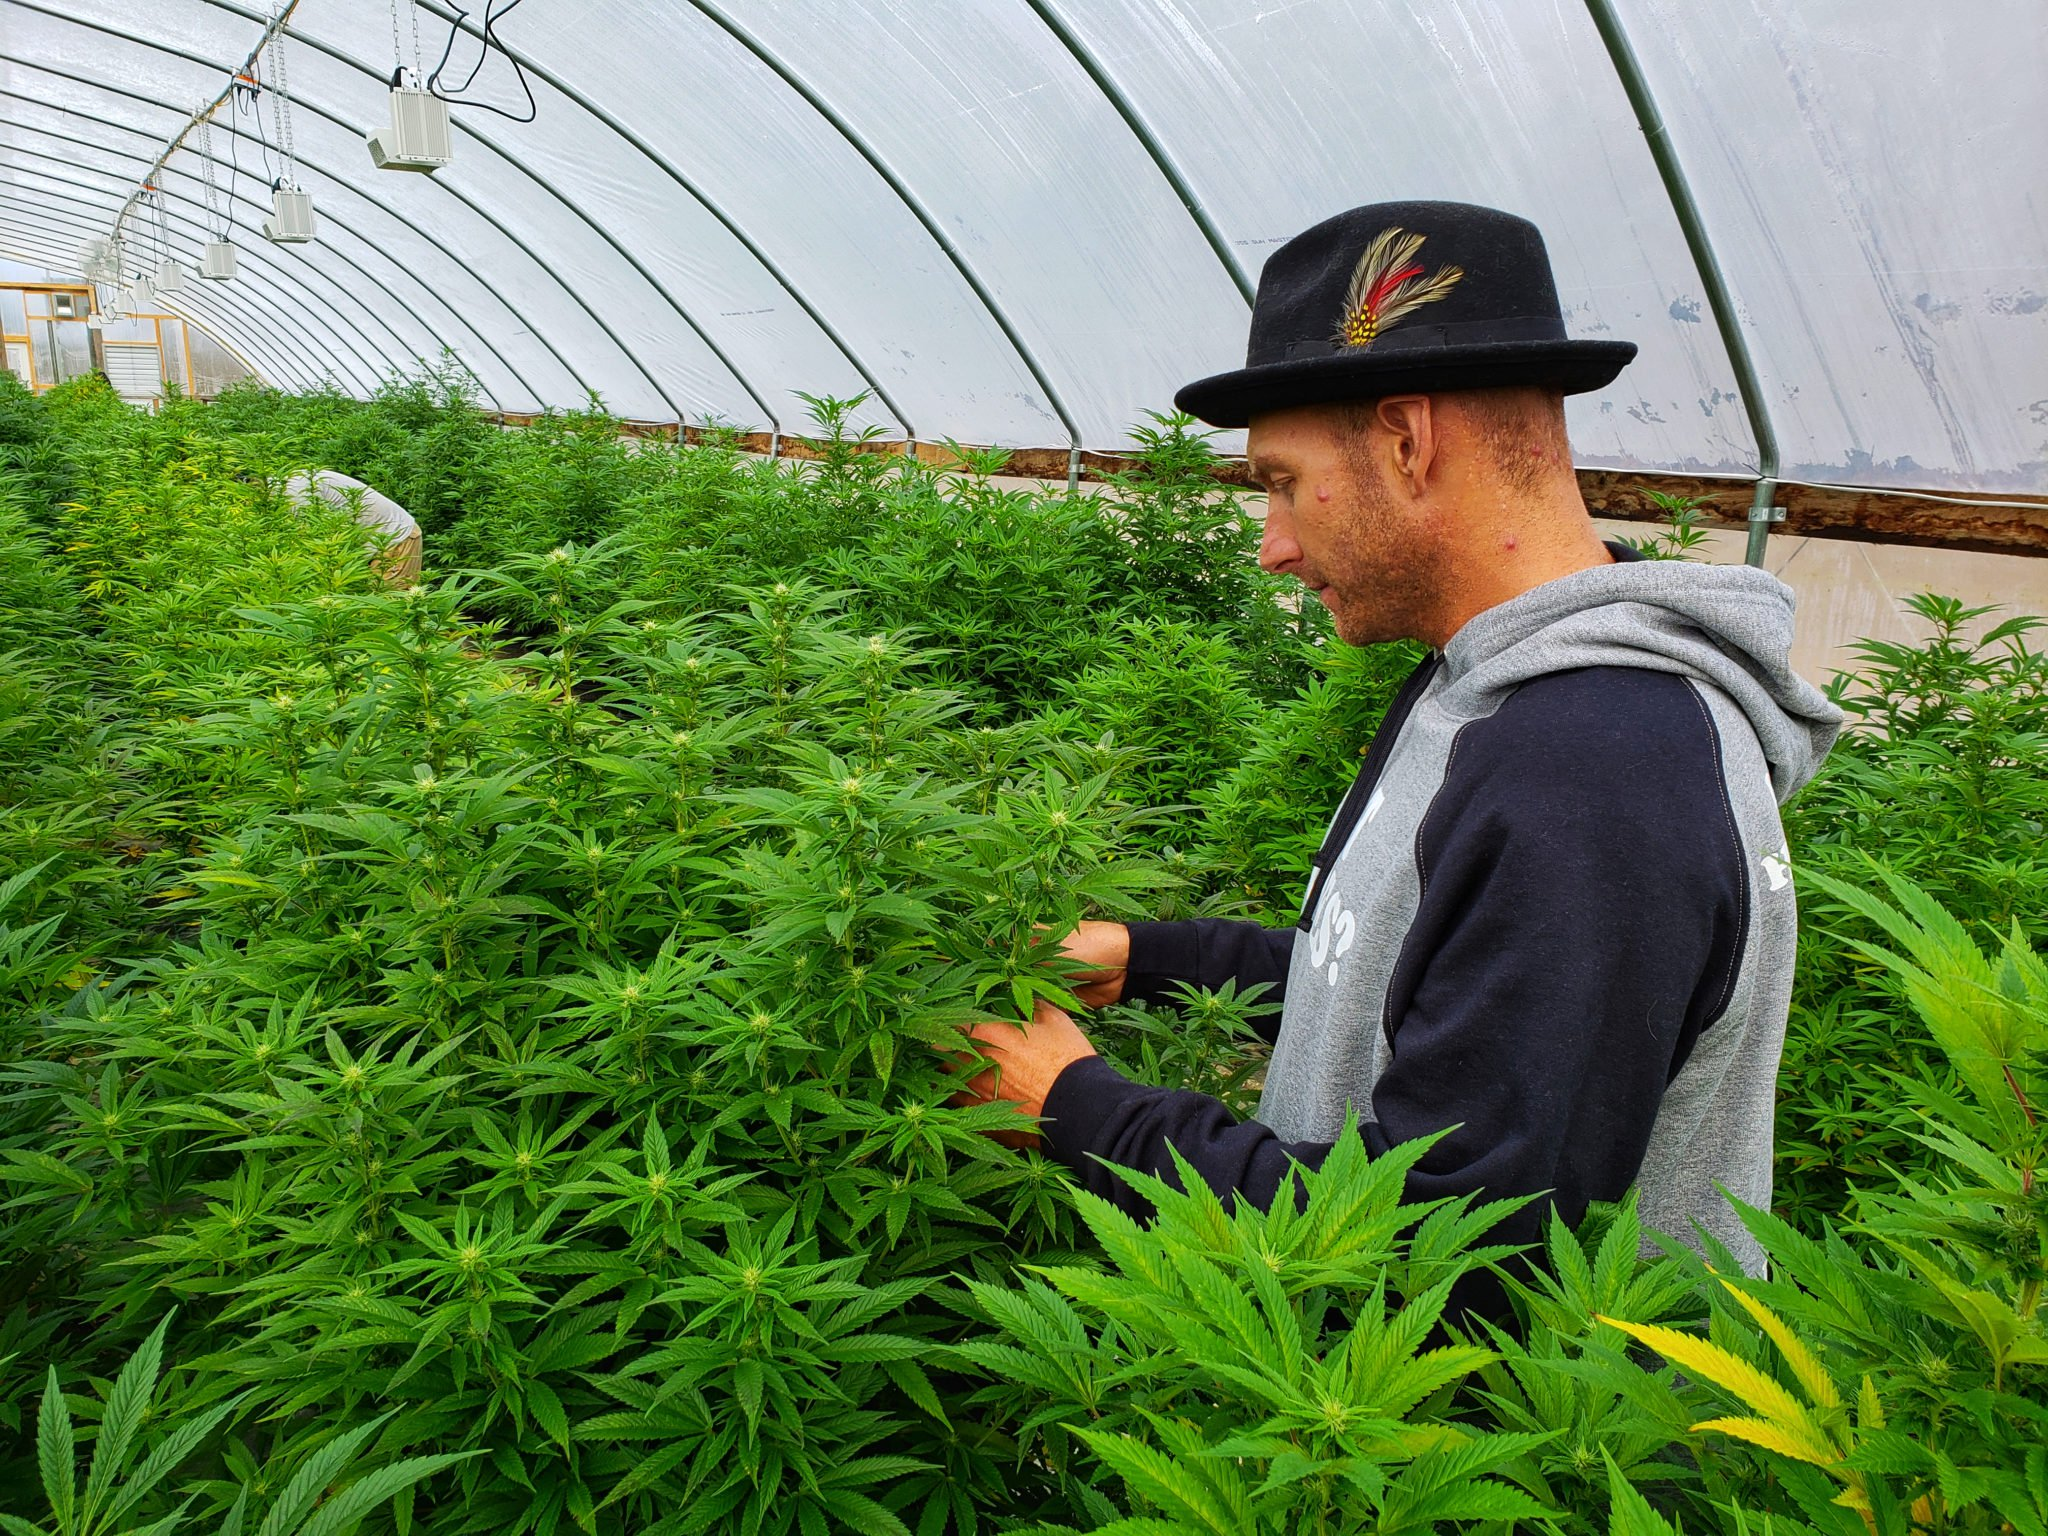 A herm farmer inspects his crop in a massive greenhouse densely packed with industrial hemp plants. The 2018 Hemp Report from Vote Hemp revealed that US hemp acres tripled between 2017 and 2018.